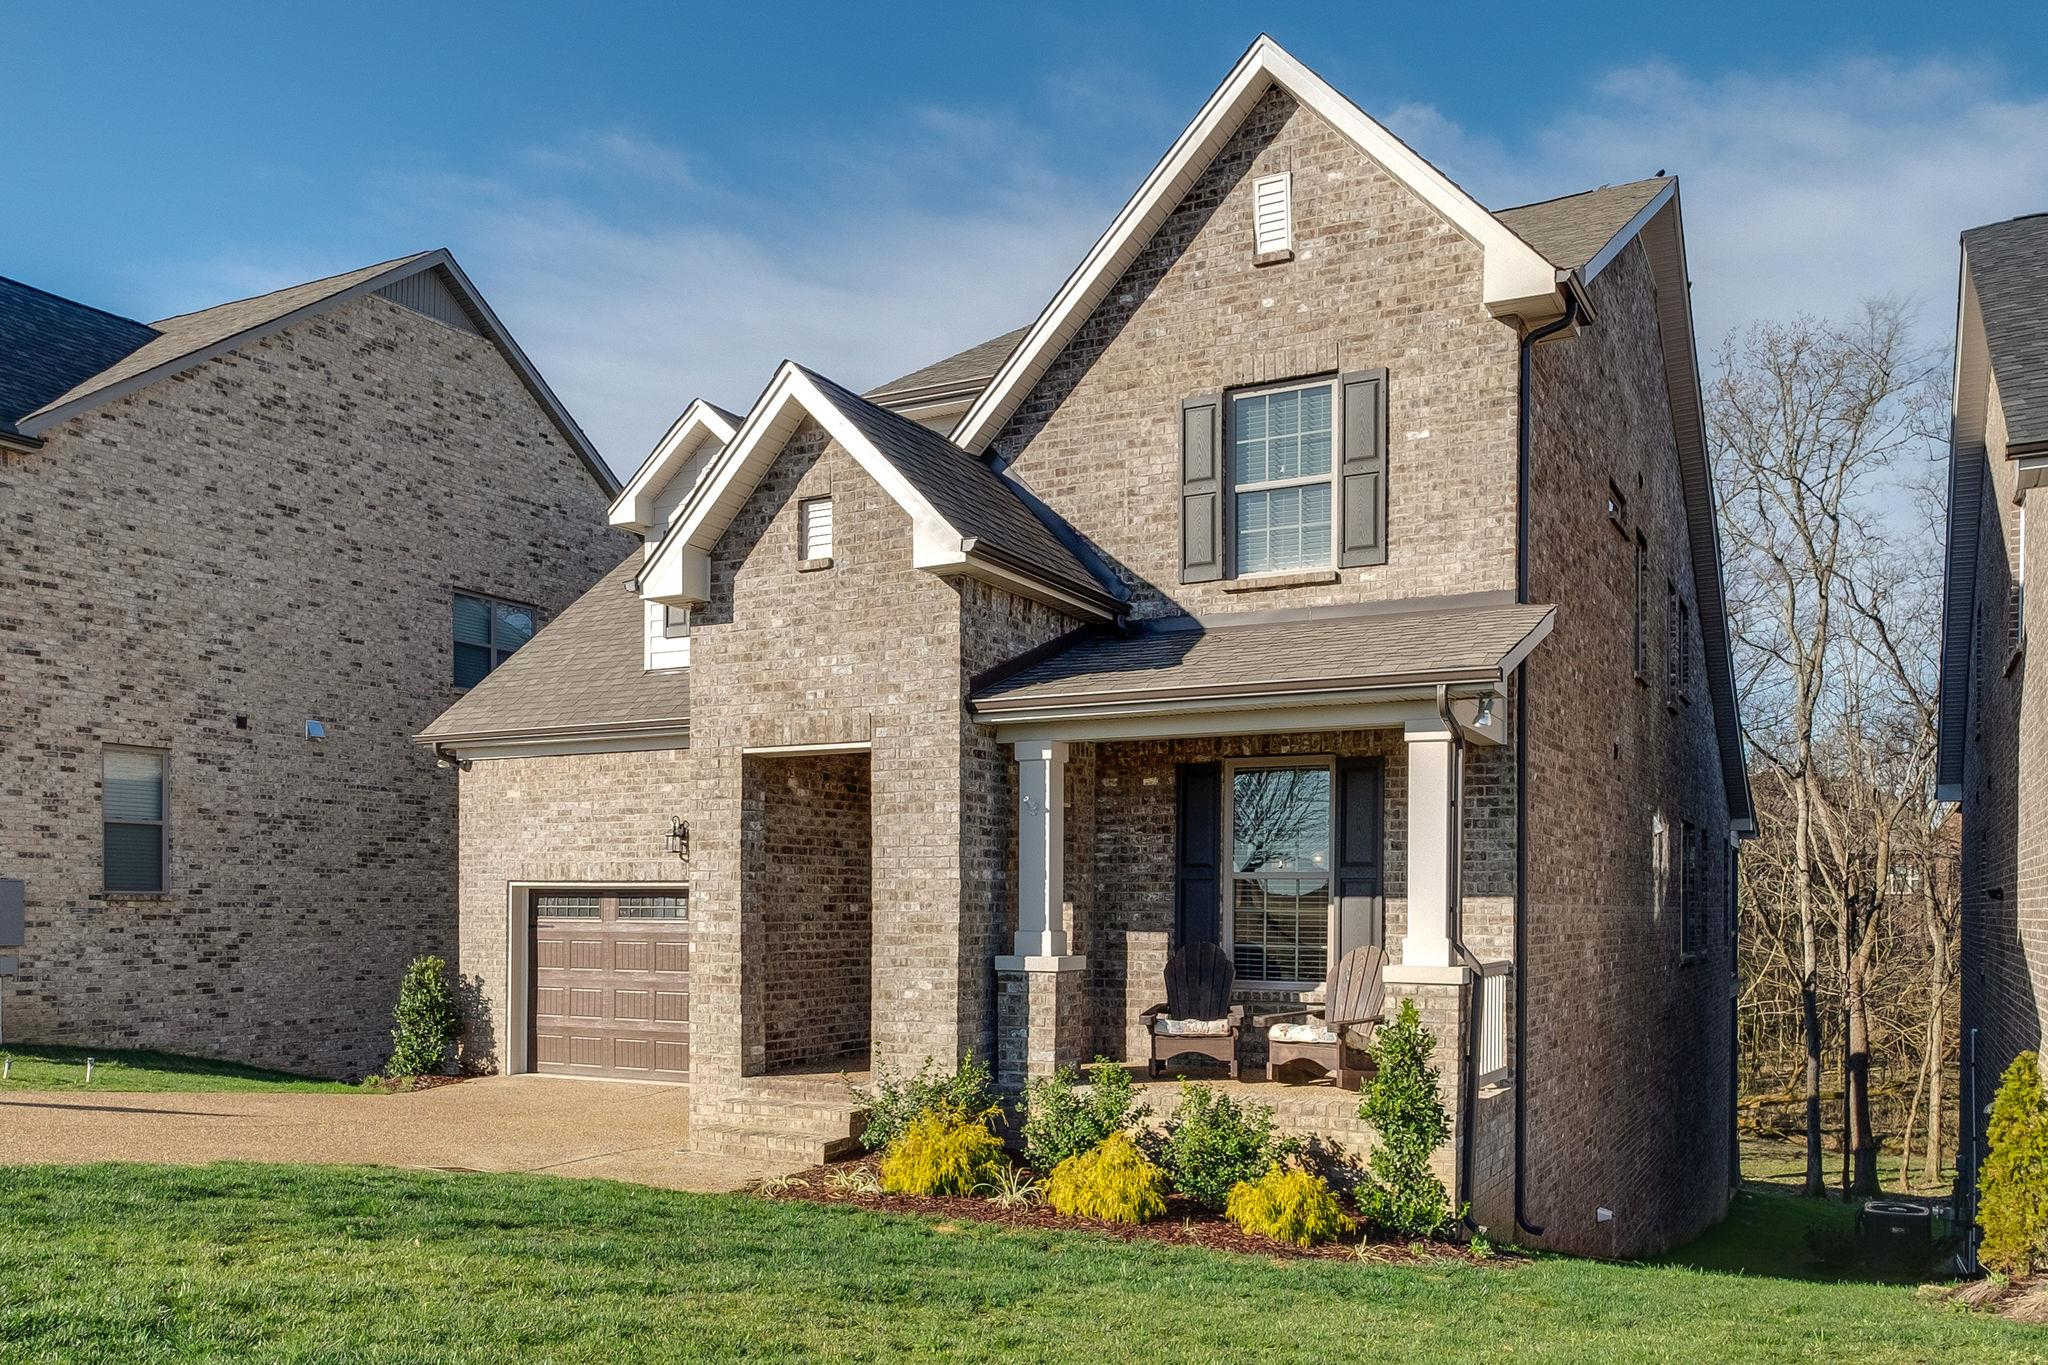 2052 Albatross Way, Gallatin, TN 37066 now has a new price of $459,900!